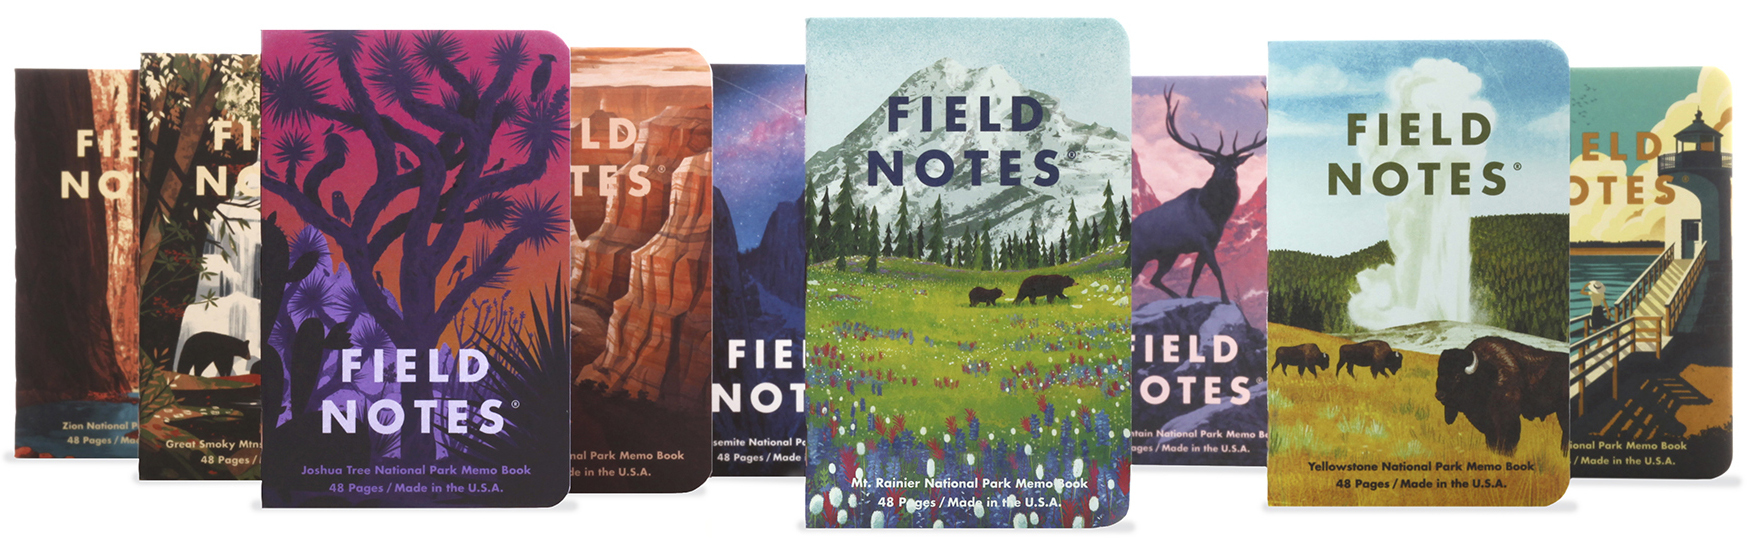 Field Notes National Park Series